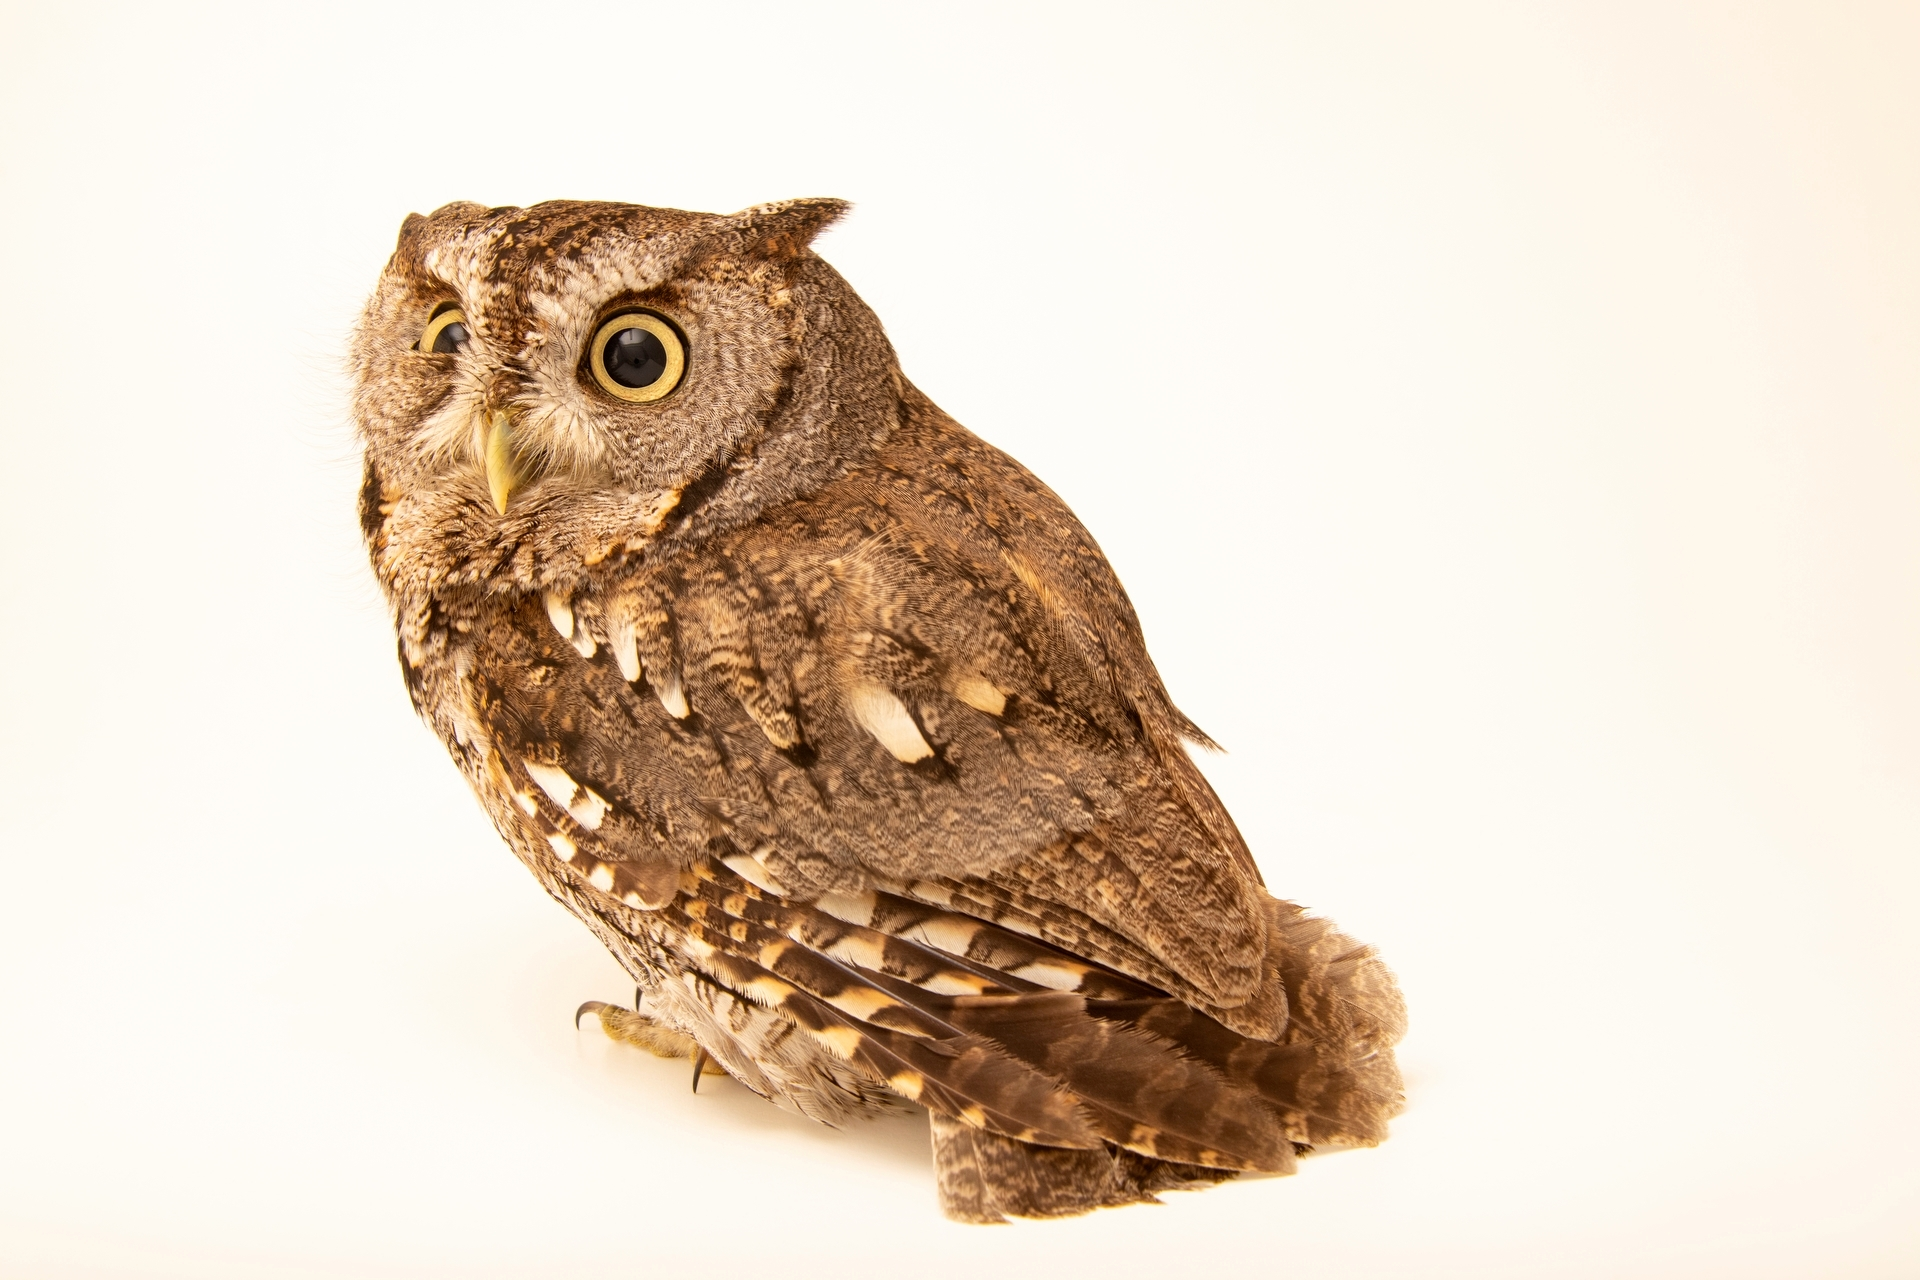 Photo: An Eastern screech owl (Megascops asio naevius) at the Carolina Waterfowl Rescue.